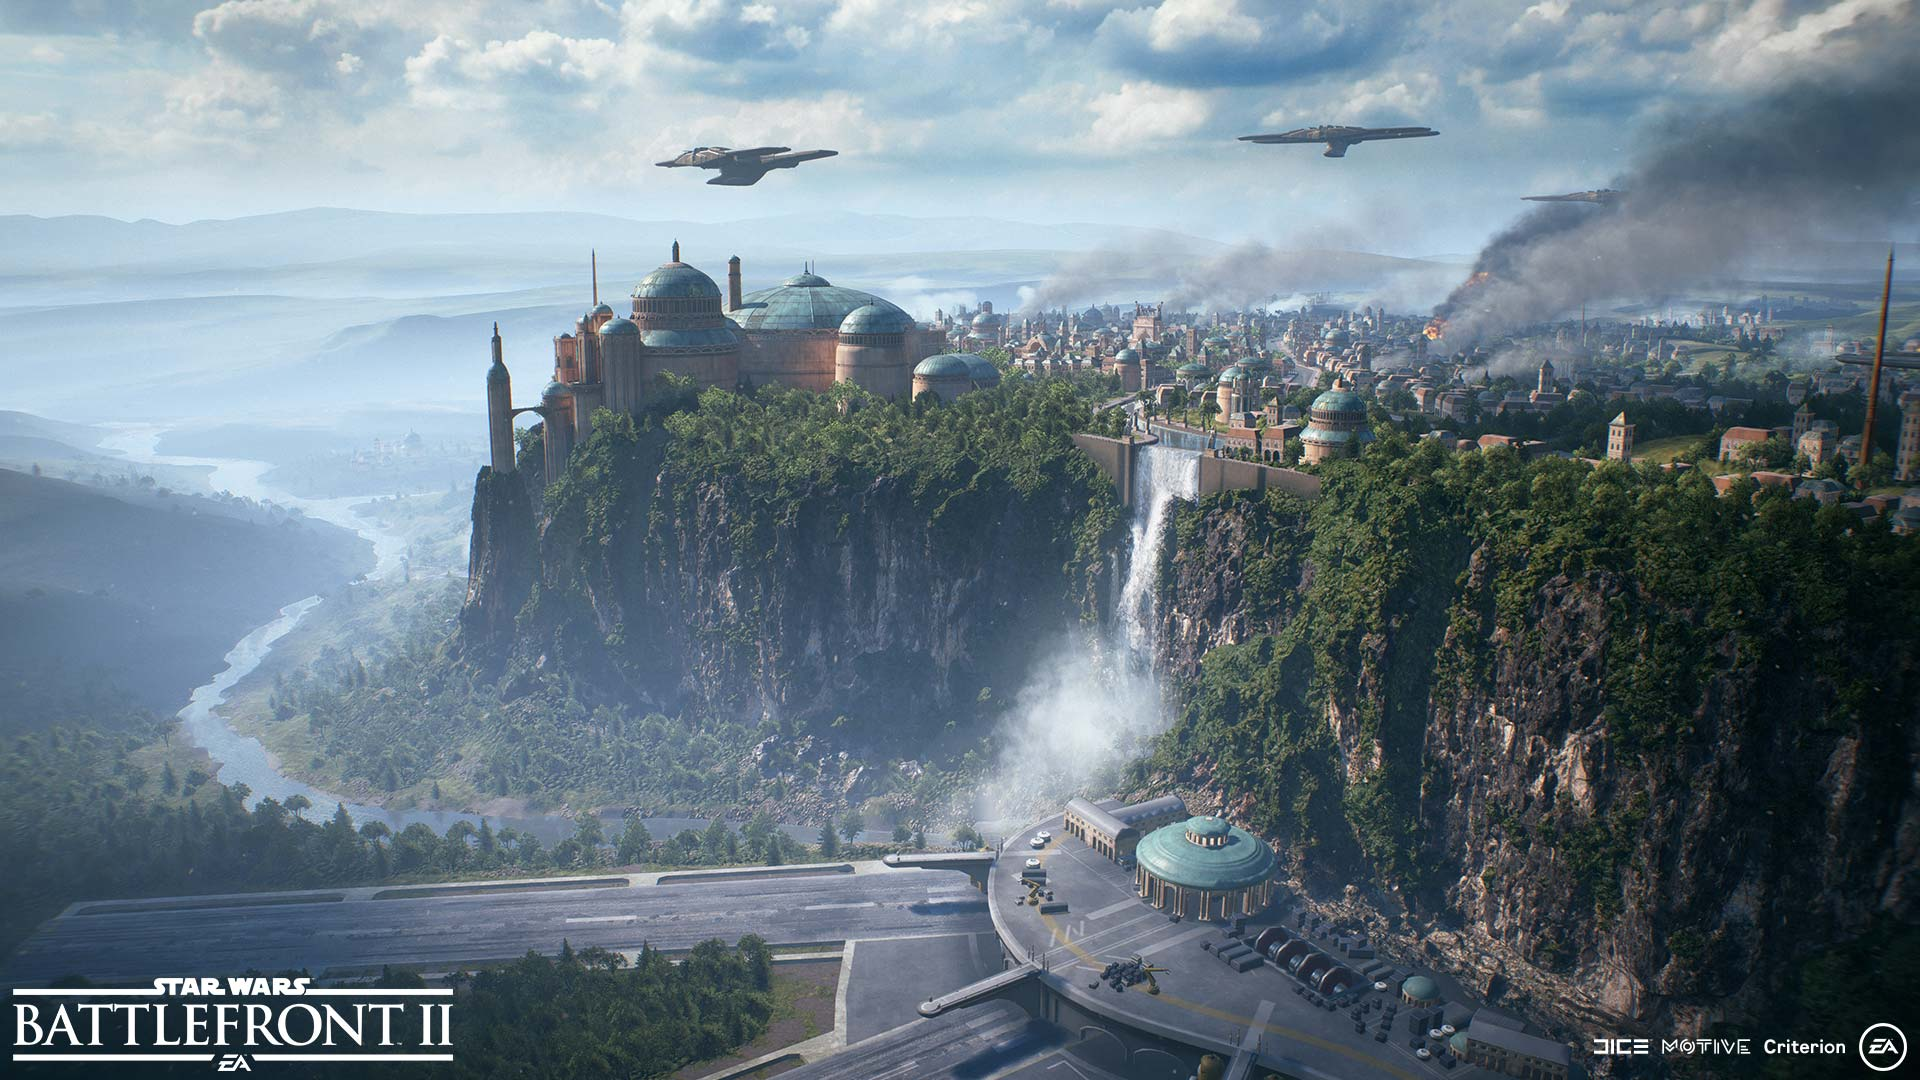 View over Theed, the capital of planet Naboo.